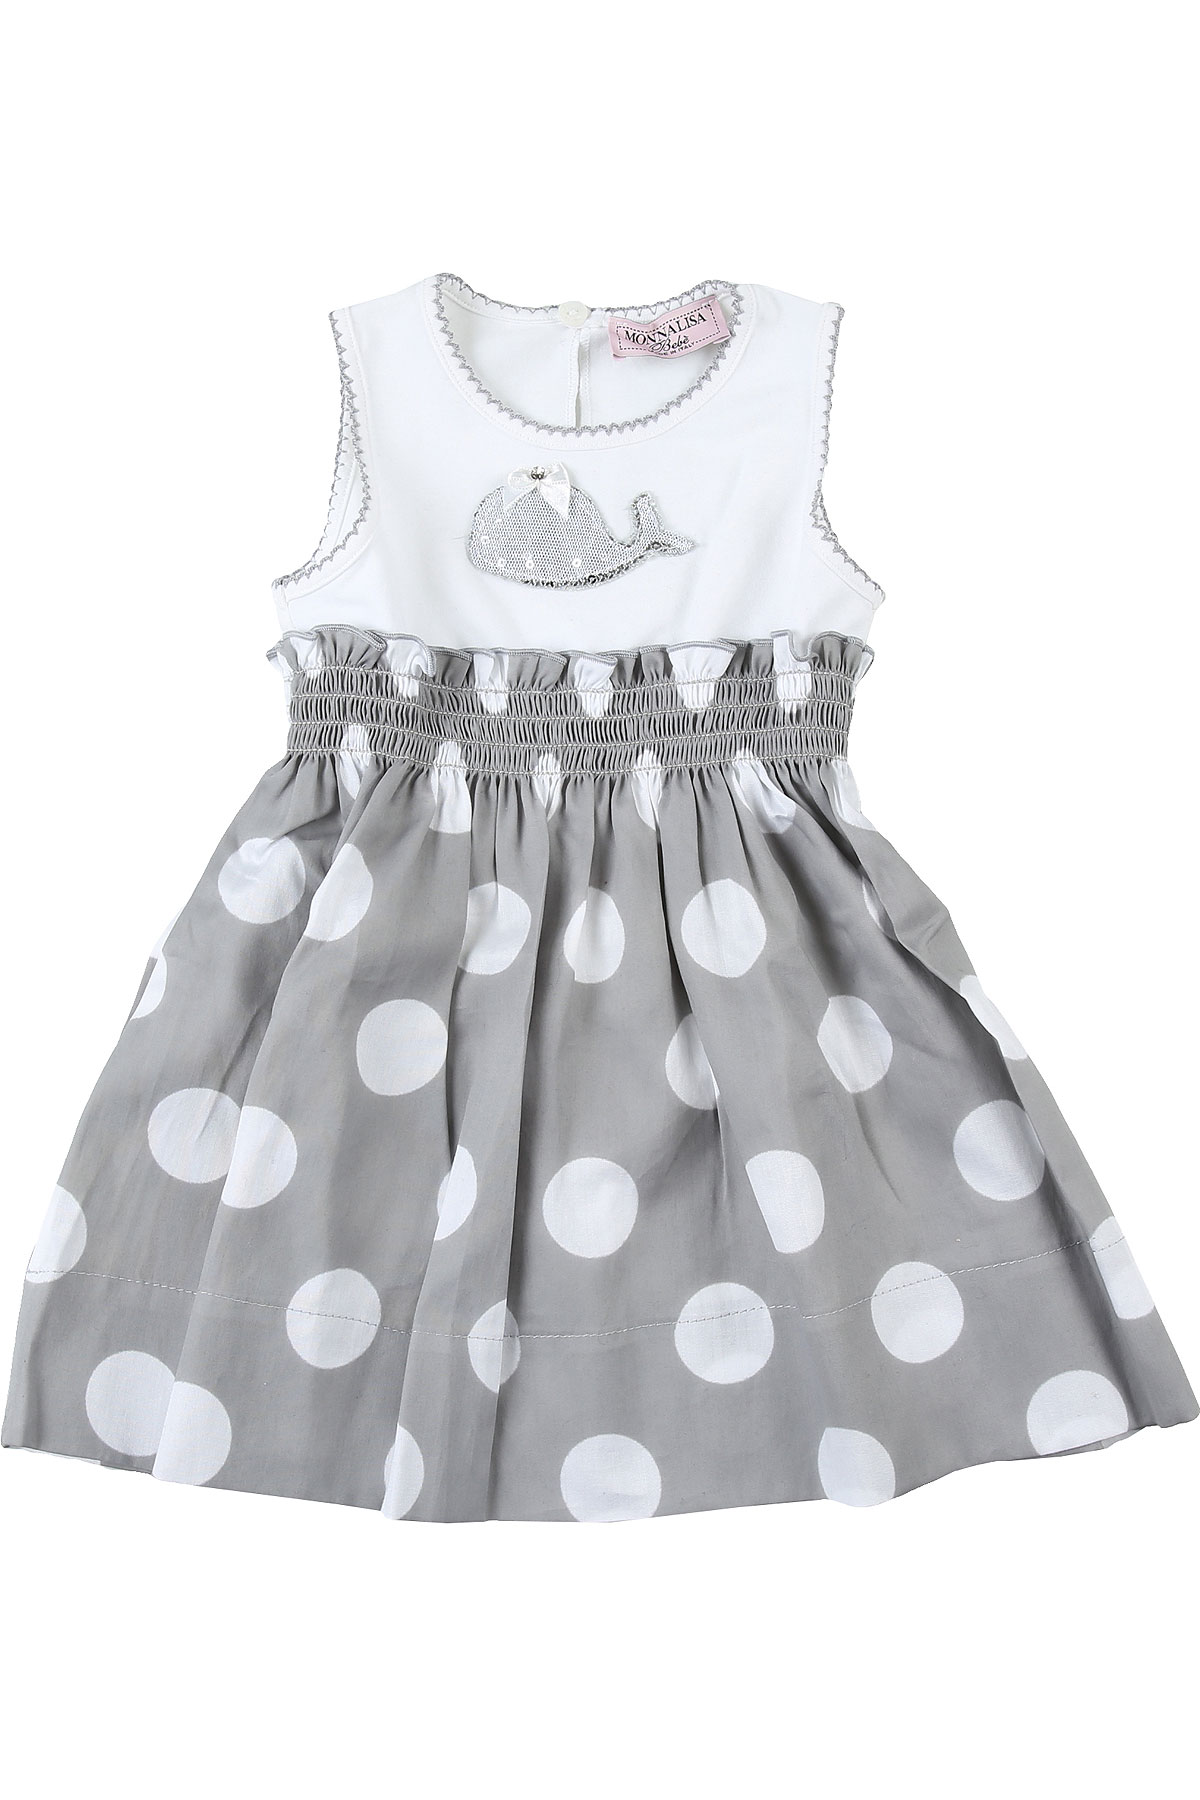 Monnalisa Baby Dress for Girls On Sale in Outlet, White, Cotton, 2019, 2Y 9M